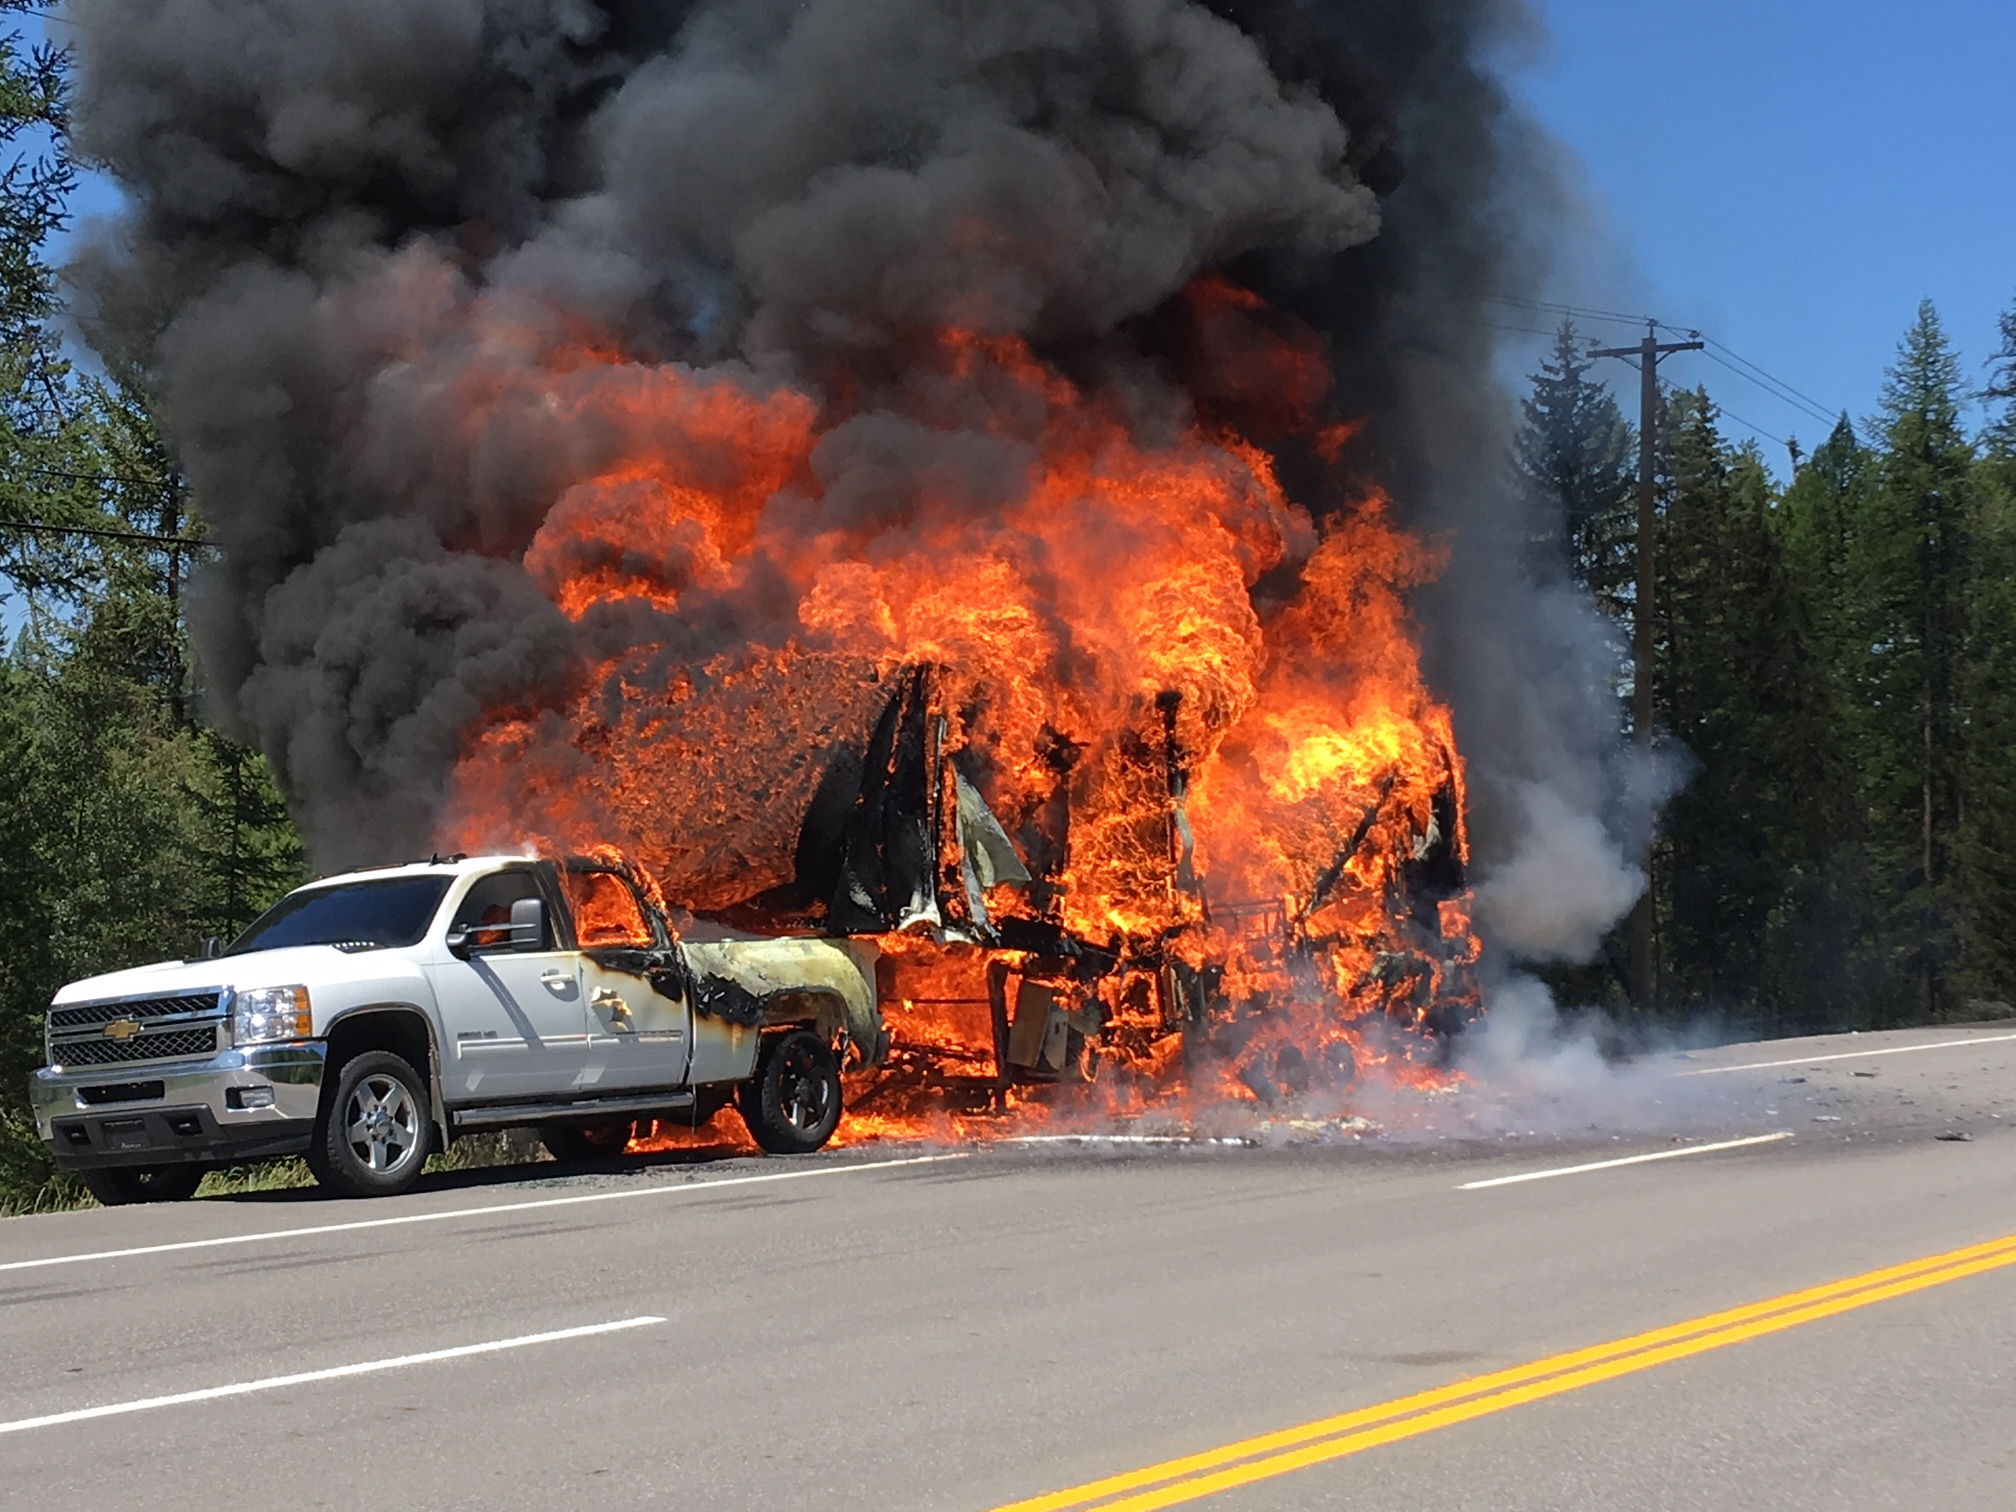 UPDATE: Highway 3/93 reopens after vehicle fire near Galloway